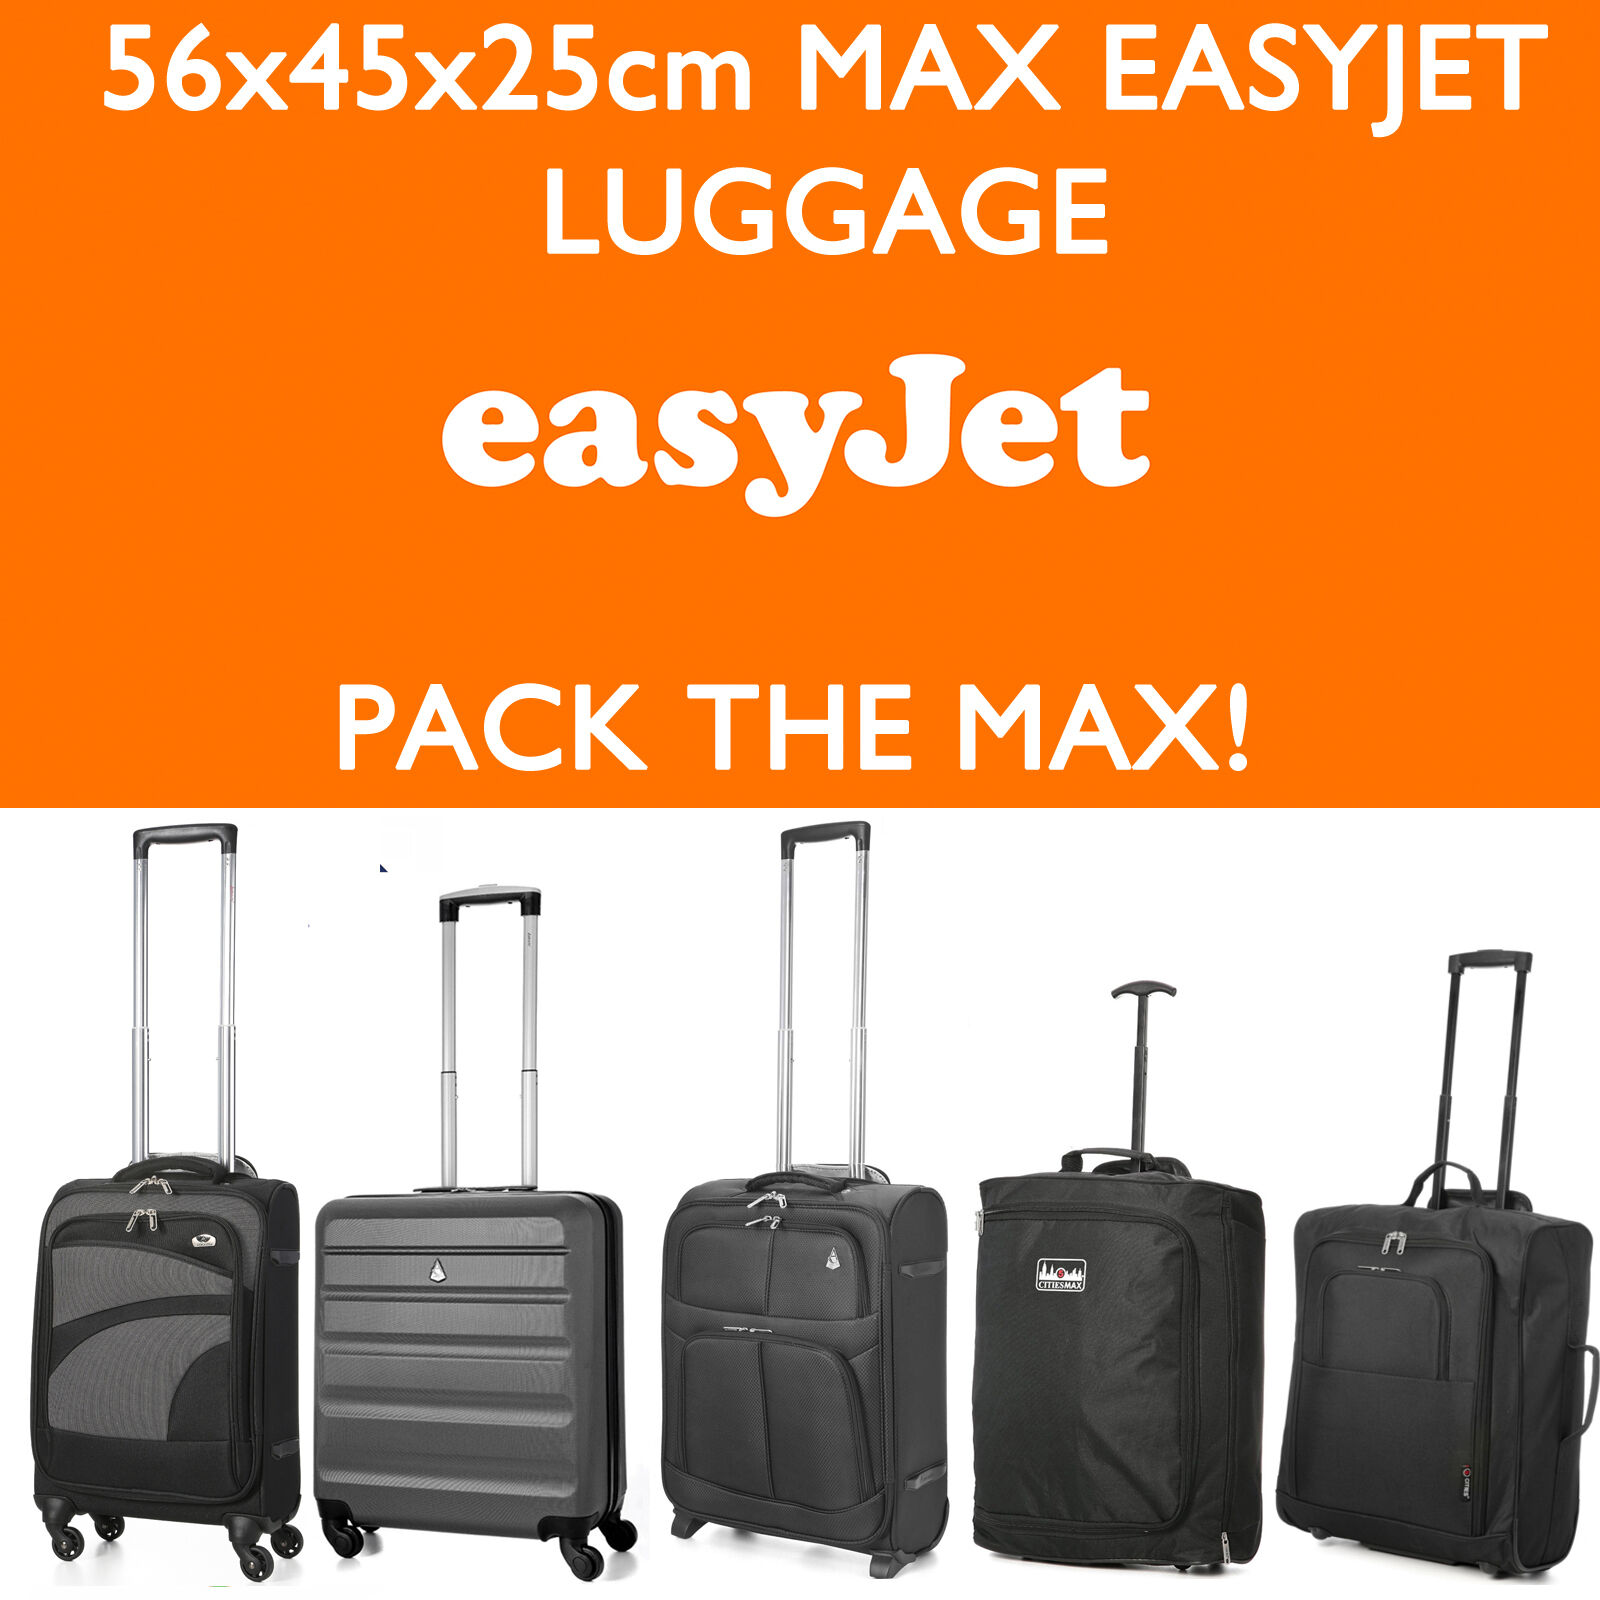 Easyjet 56x45x25 Max Large Cabin Hand Carry Luggage Suitcase Travel Trolley Bags 1 Of 1free Shipping See More